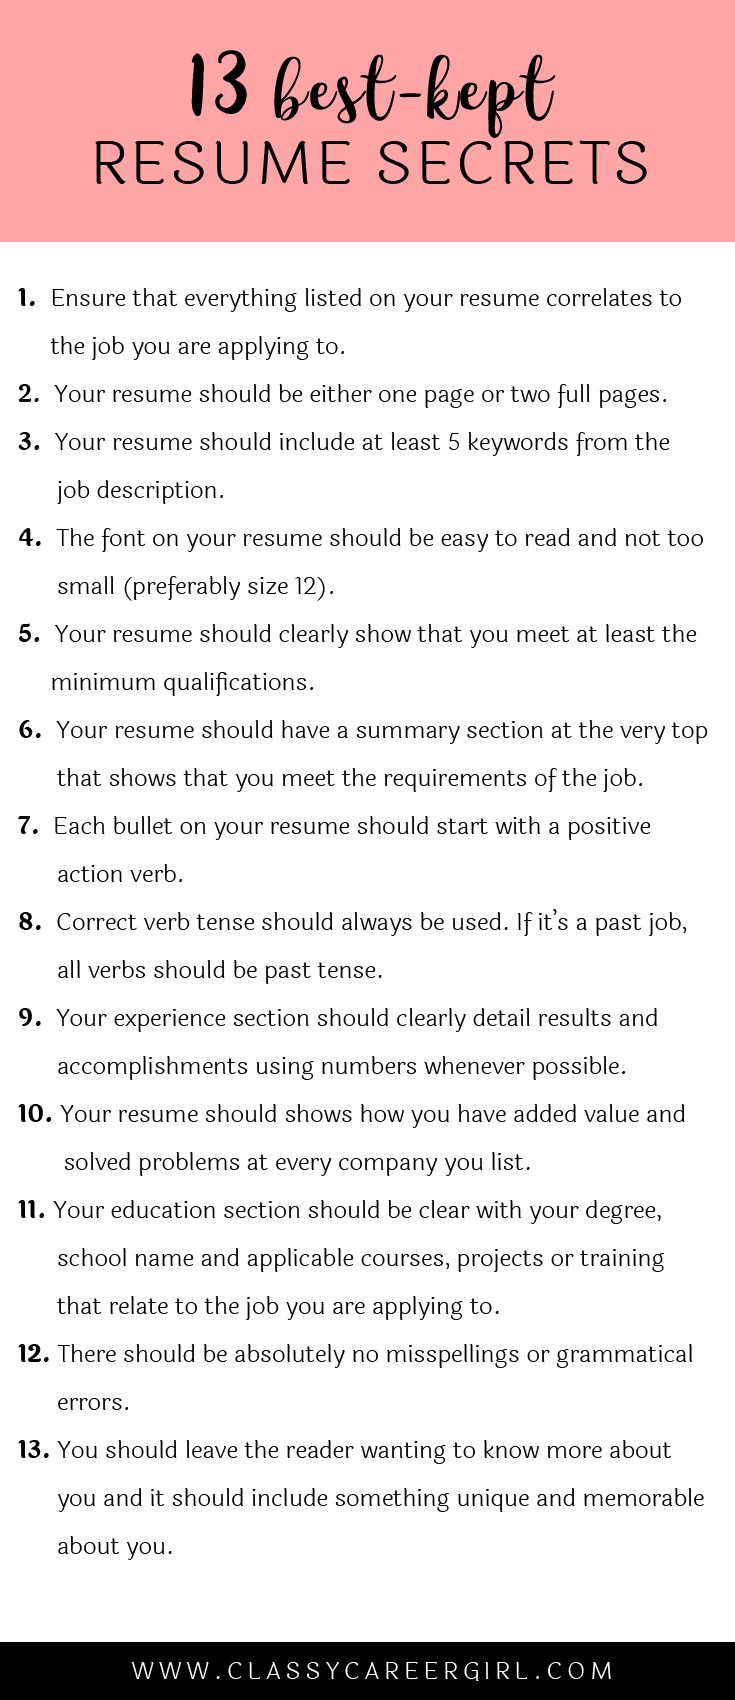 Opposenewapstandardsus  Mesmerizing  Ideas About Resume On Pinterest  Cv Format Resume Cv And  With Entrancing Some Hiring Managers Will Toss Your Resume Out If You Dont Know These  With Comely Electricians Resume Also General Resume Cover Letter Examples In Addition Perfect Resume Format And Resume Template For Free As Well As Professional Resume Objective Additionally Middle School Teacher Resume From Pinterestcom With Opposenewapstandardsus  Entrancing  Ideas About Resume On Pinterest  Cv Format Resume Cv And  With Comely Some Hiring Managers Will Toss Your Resume Out If You Dont Know These  And Mesmerizing Electricians Resume Also General Resume Cover Letter Examples In Addition Perfect Resume Format From Pinterestcom